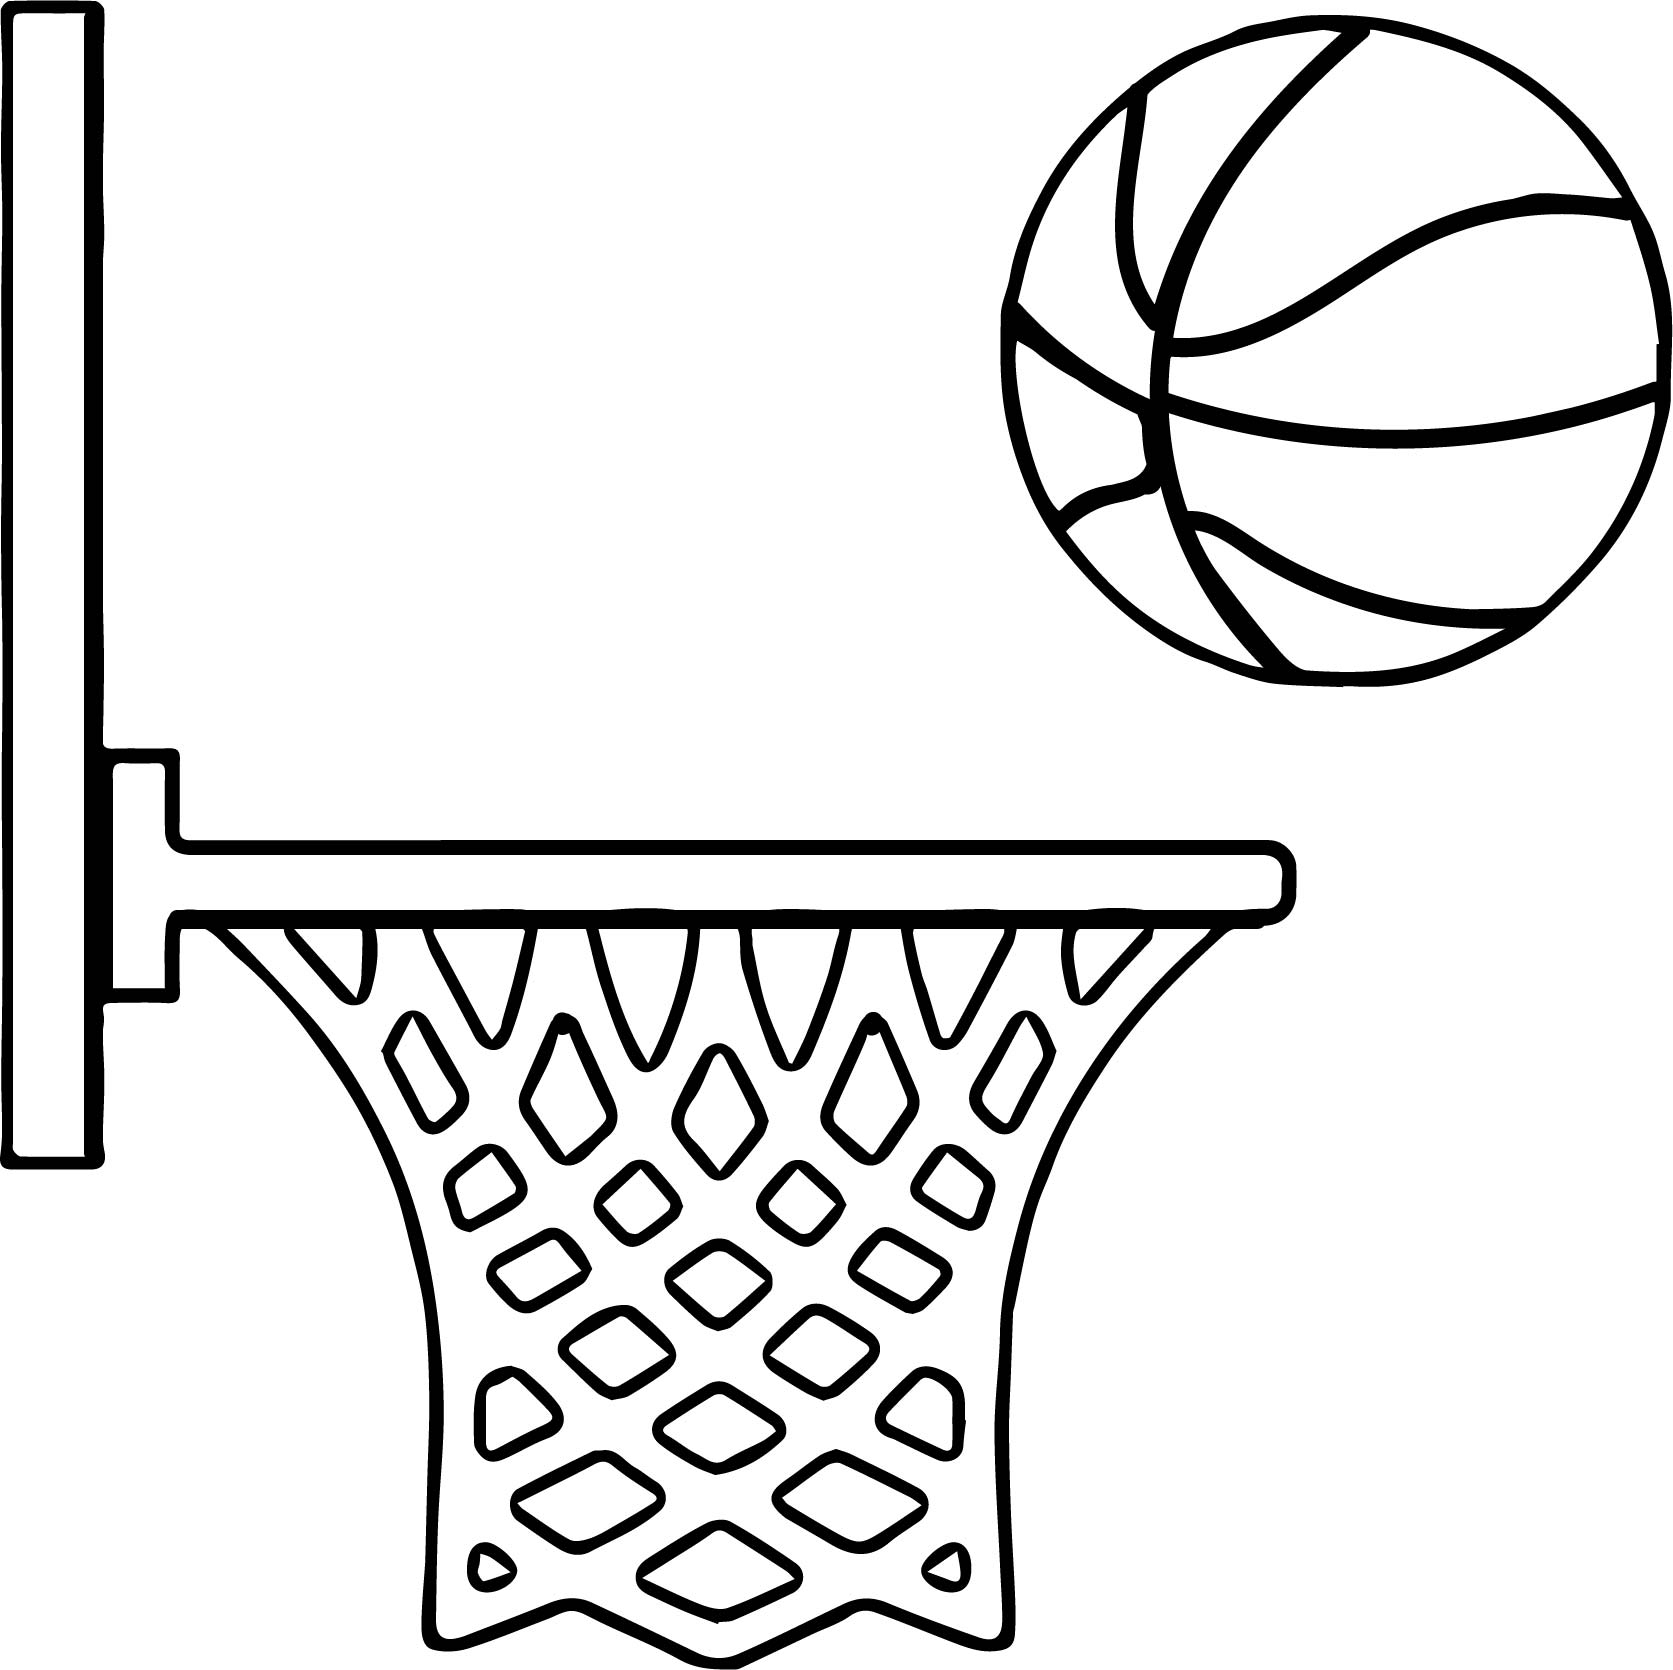 Basketball Coloring Pages Side Playing Basketball Coloring Page Wecoloringpage